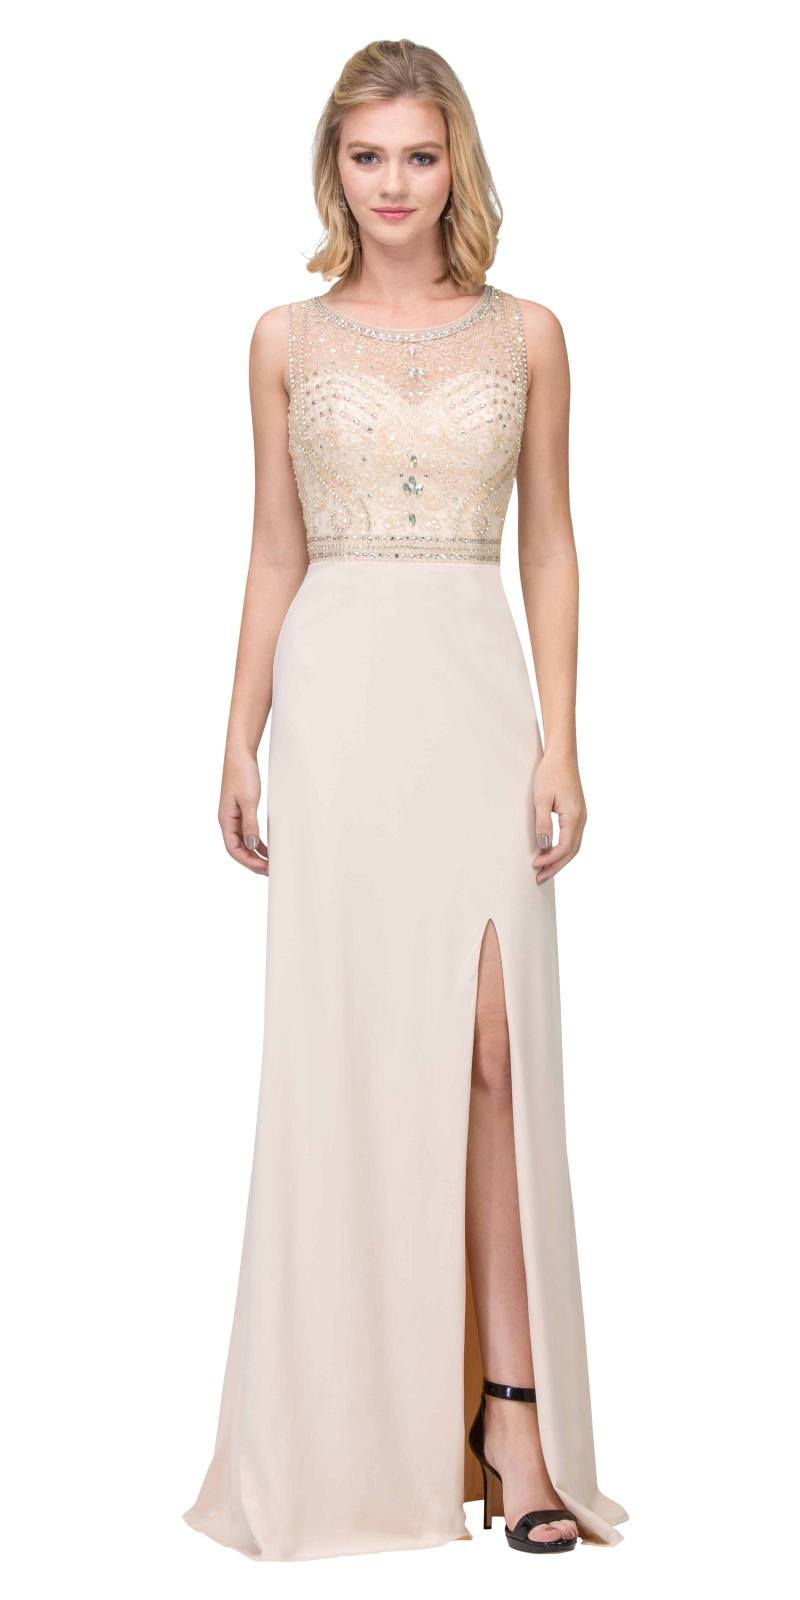 Starbox USA 17172 Rhinestone Embellished Evening Gown Sleeveless ...